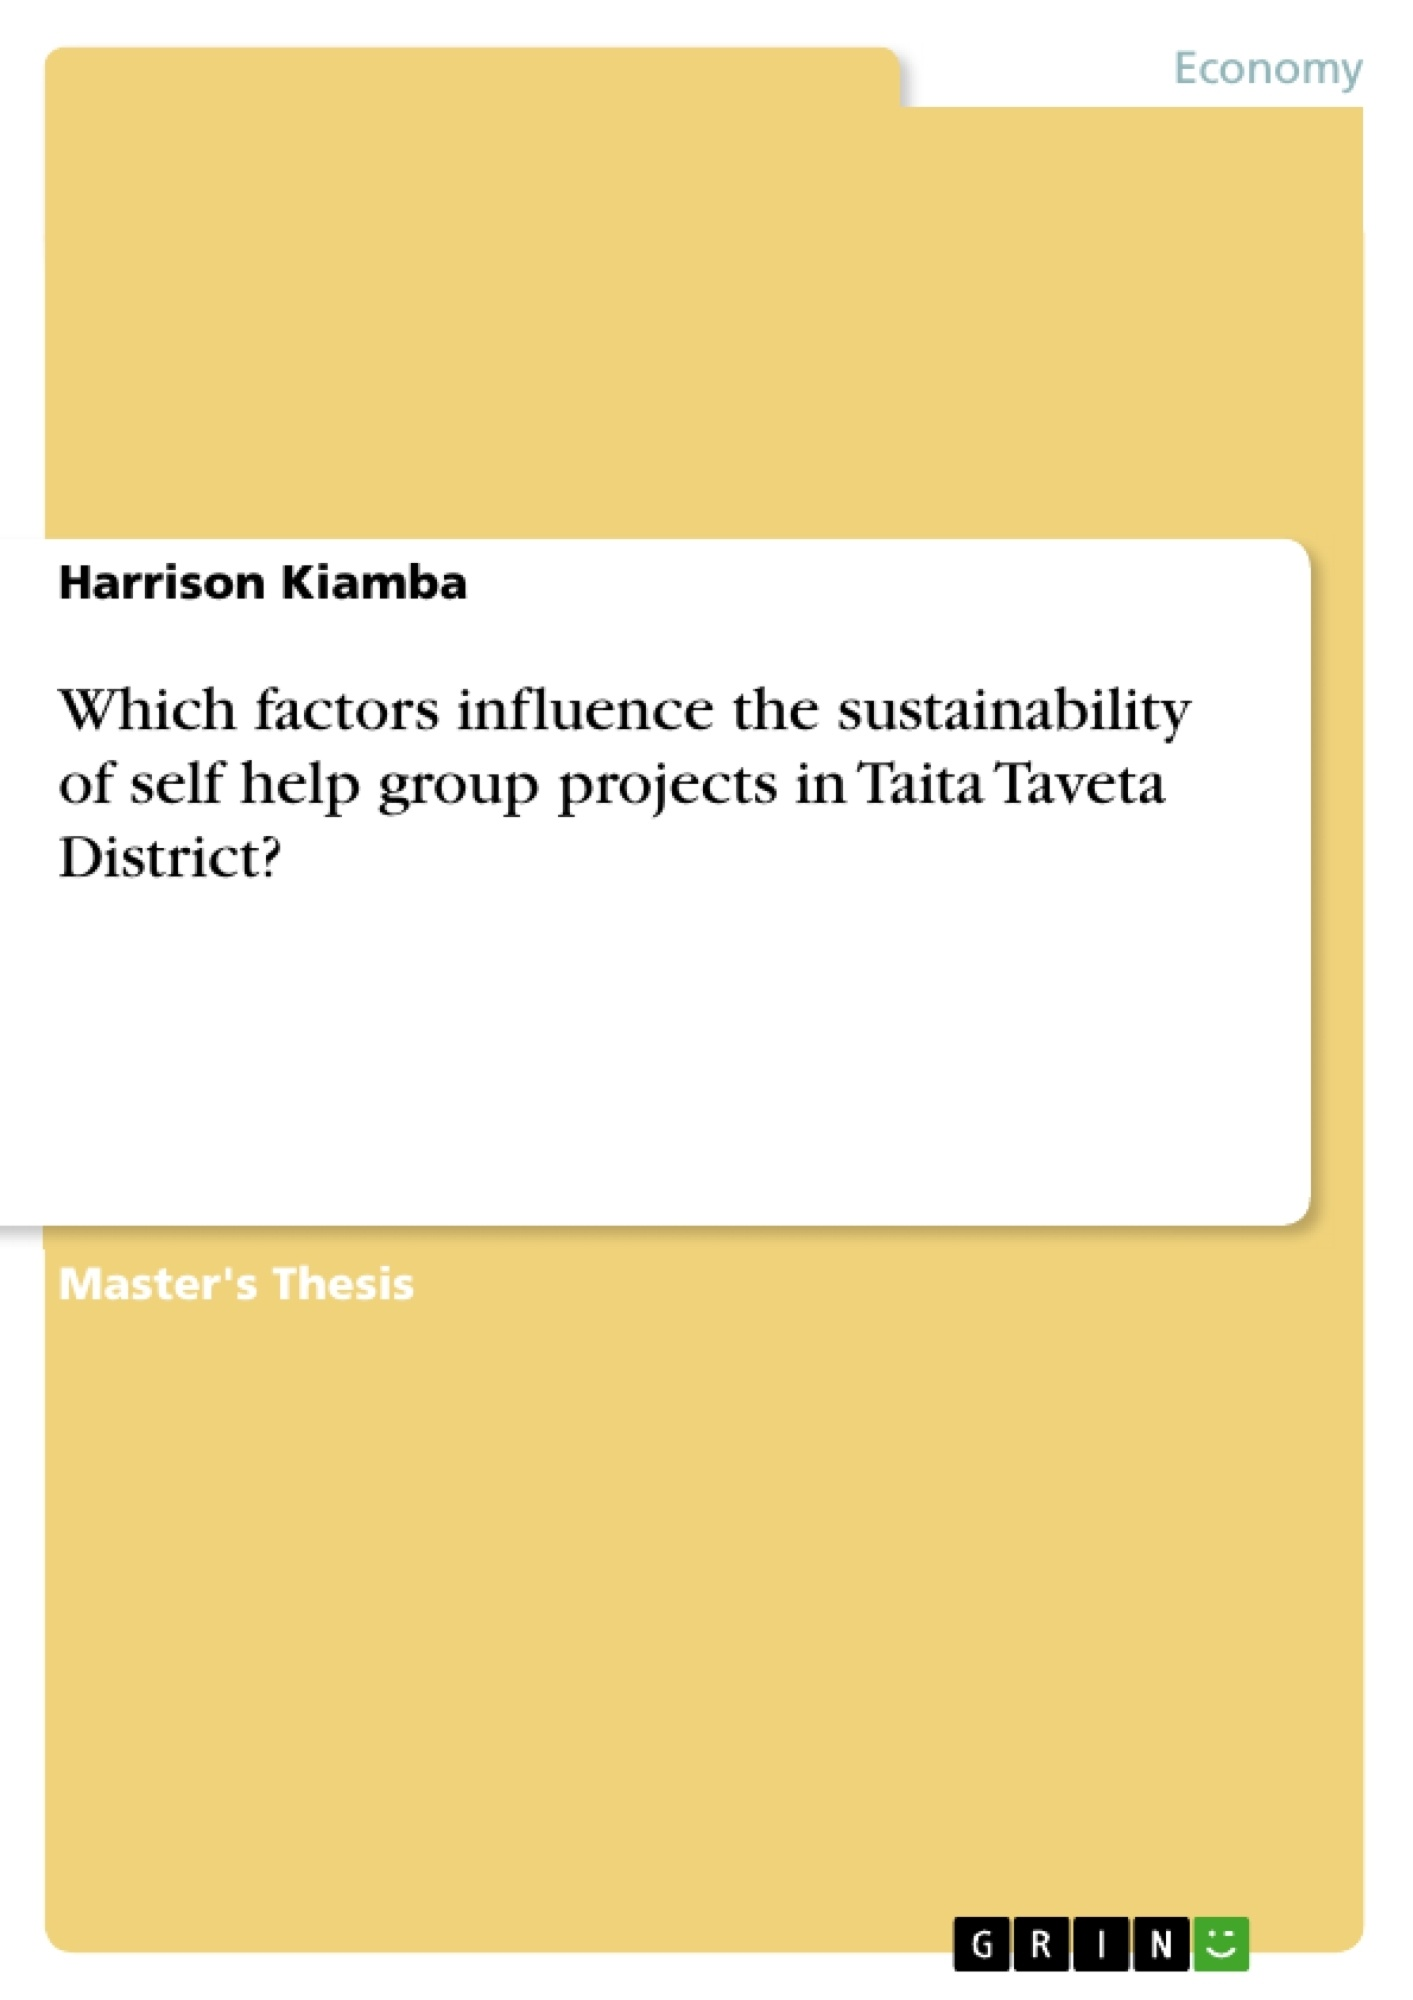 Title: Which factors influence the sustainability of self help group projects in Taita Taveta District?